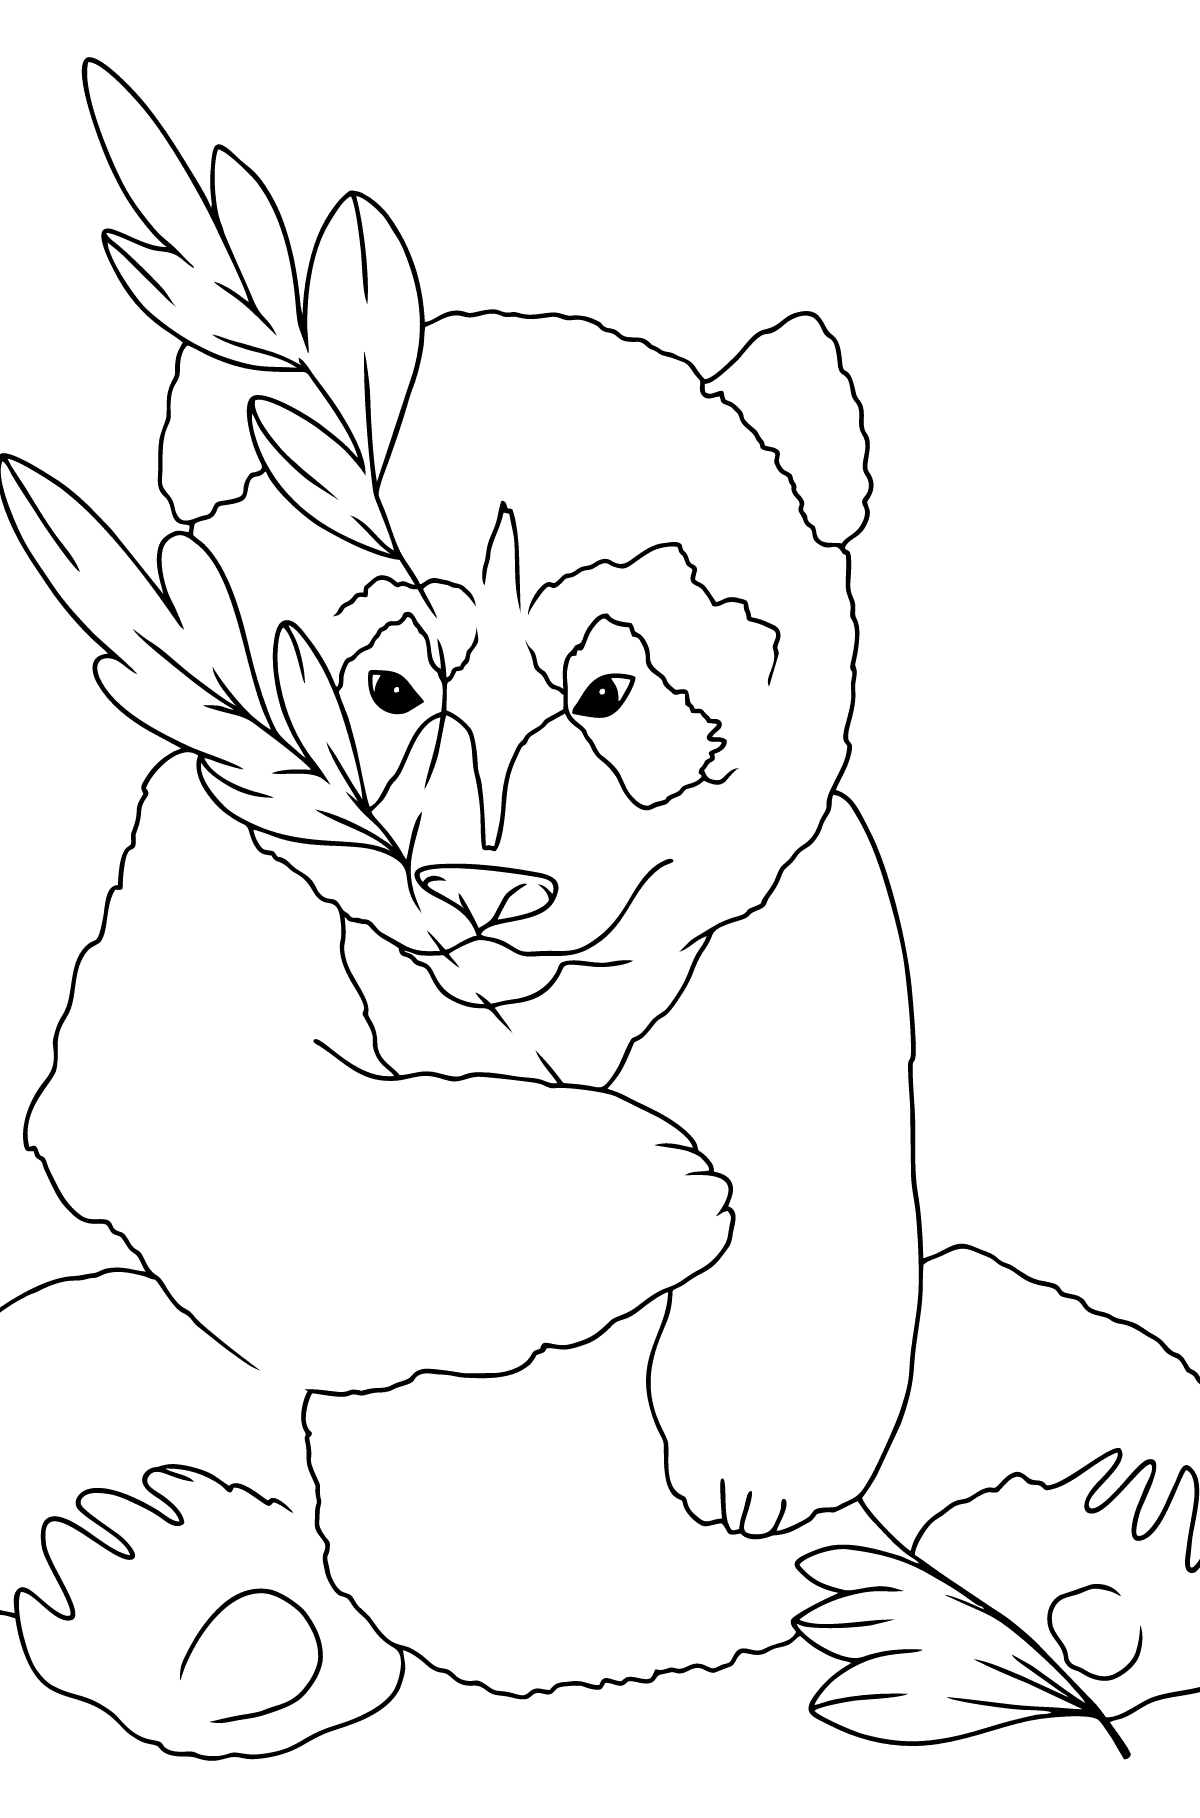 Coloring Page - A Panda is Hugging Bamboo Leaves - Coloring Pages for Kids